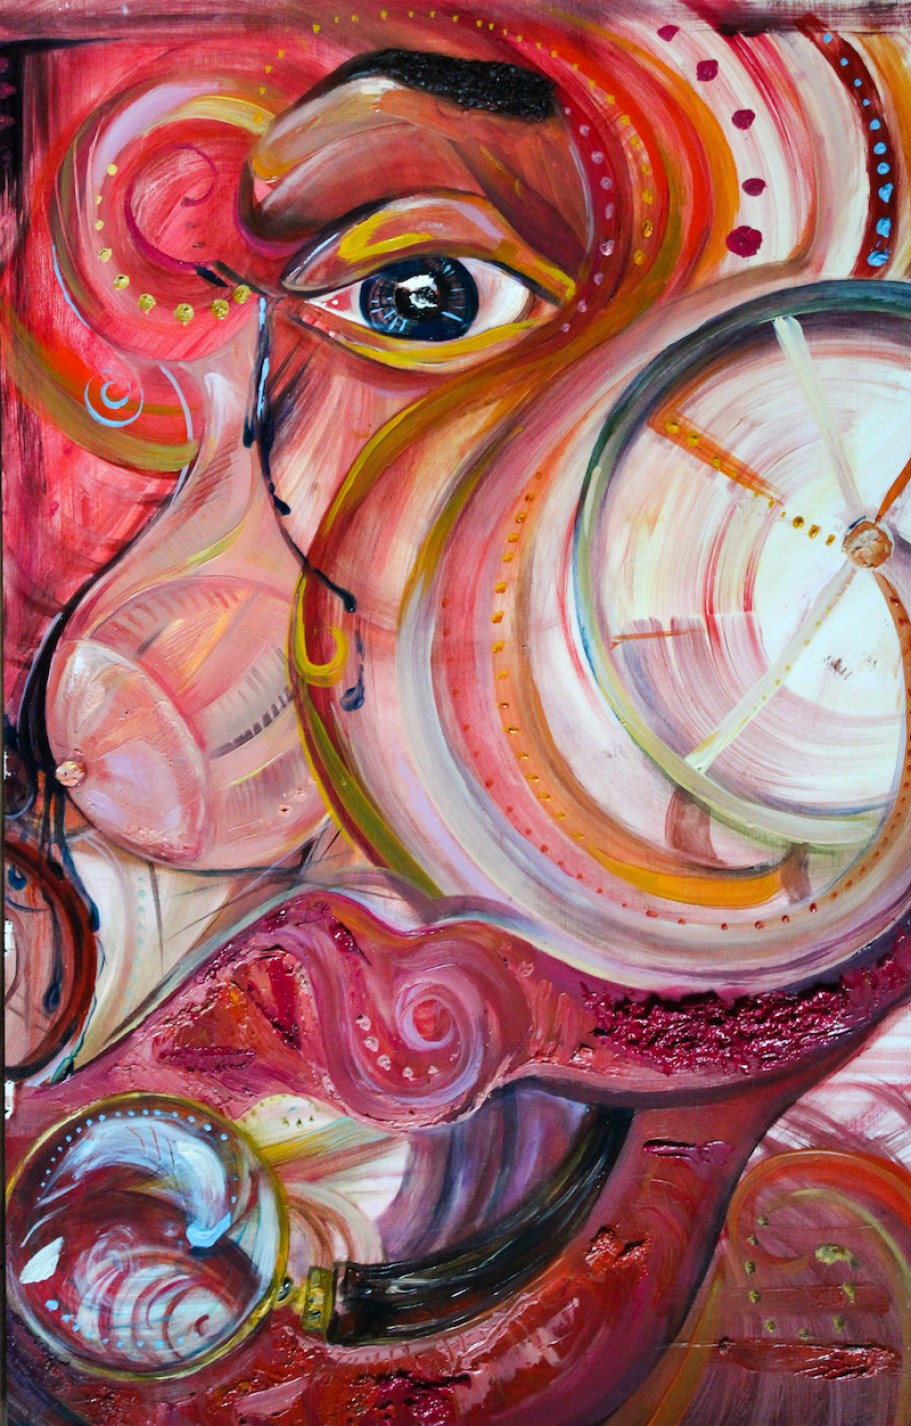 An abstract painting in pinks, reds and oranges swirling with a human eye at the top.